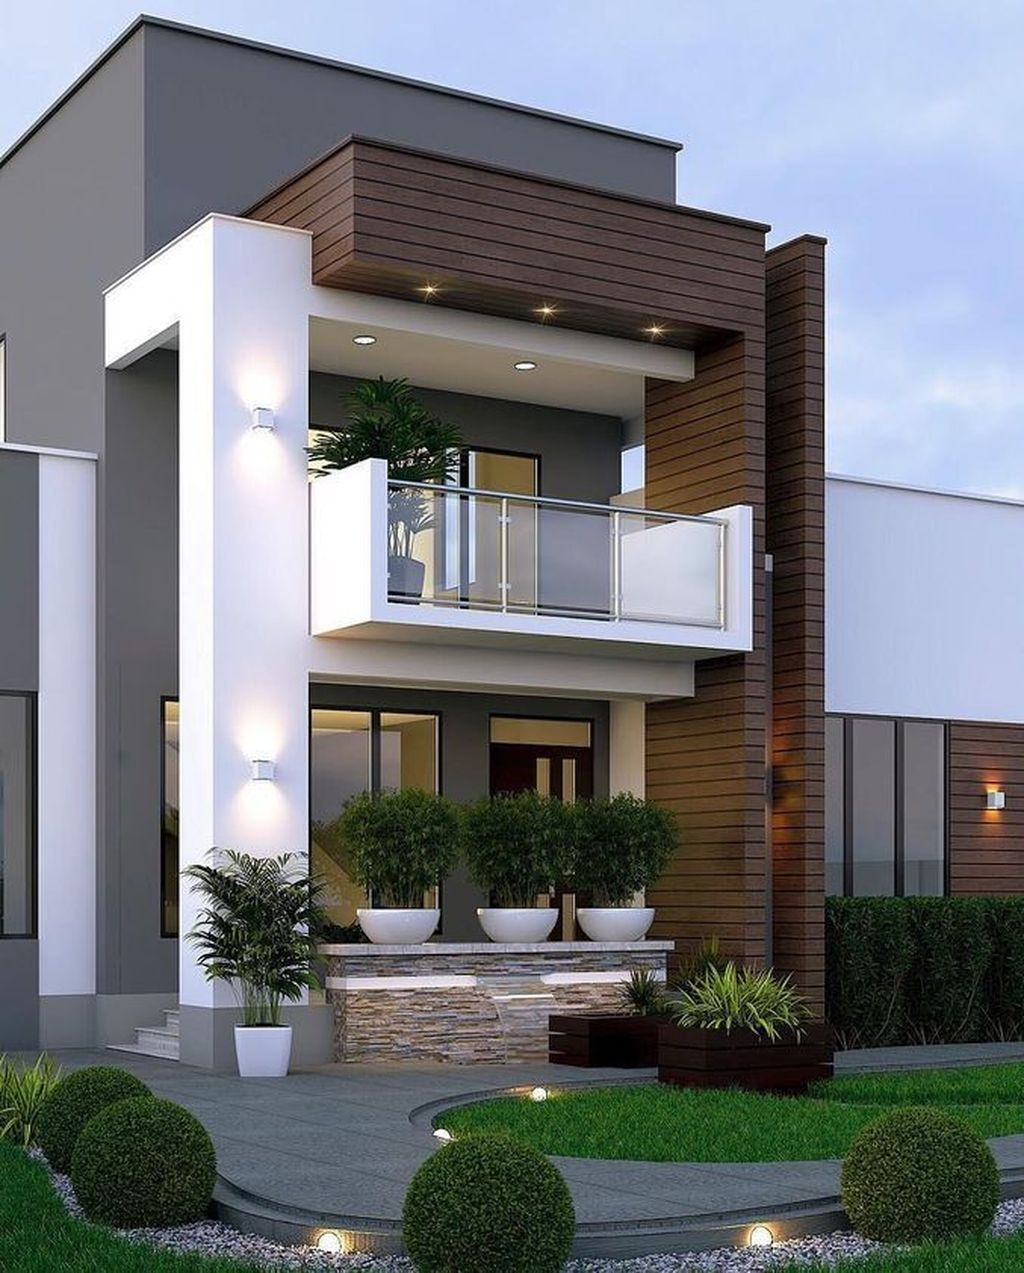 30 Stunning Minimalist Houses Design Ideas That Simple Unique And Modern Facade House Modern Minimalist House Modern Exterior House Designs